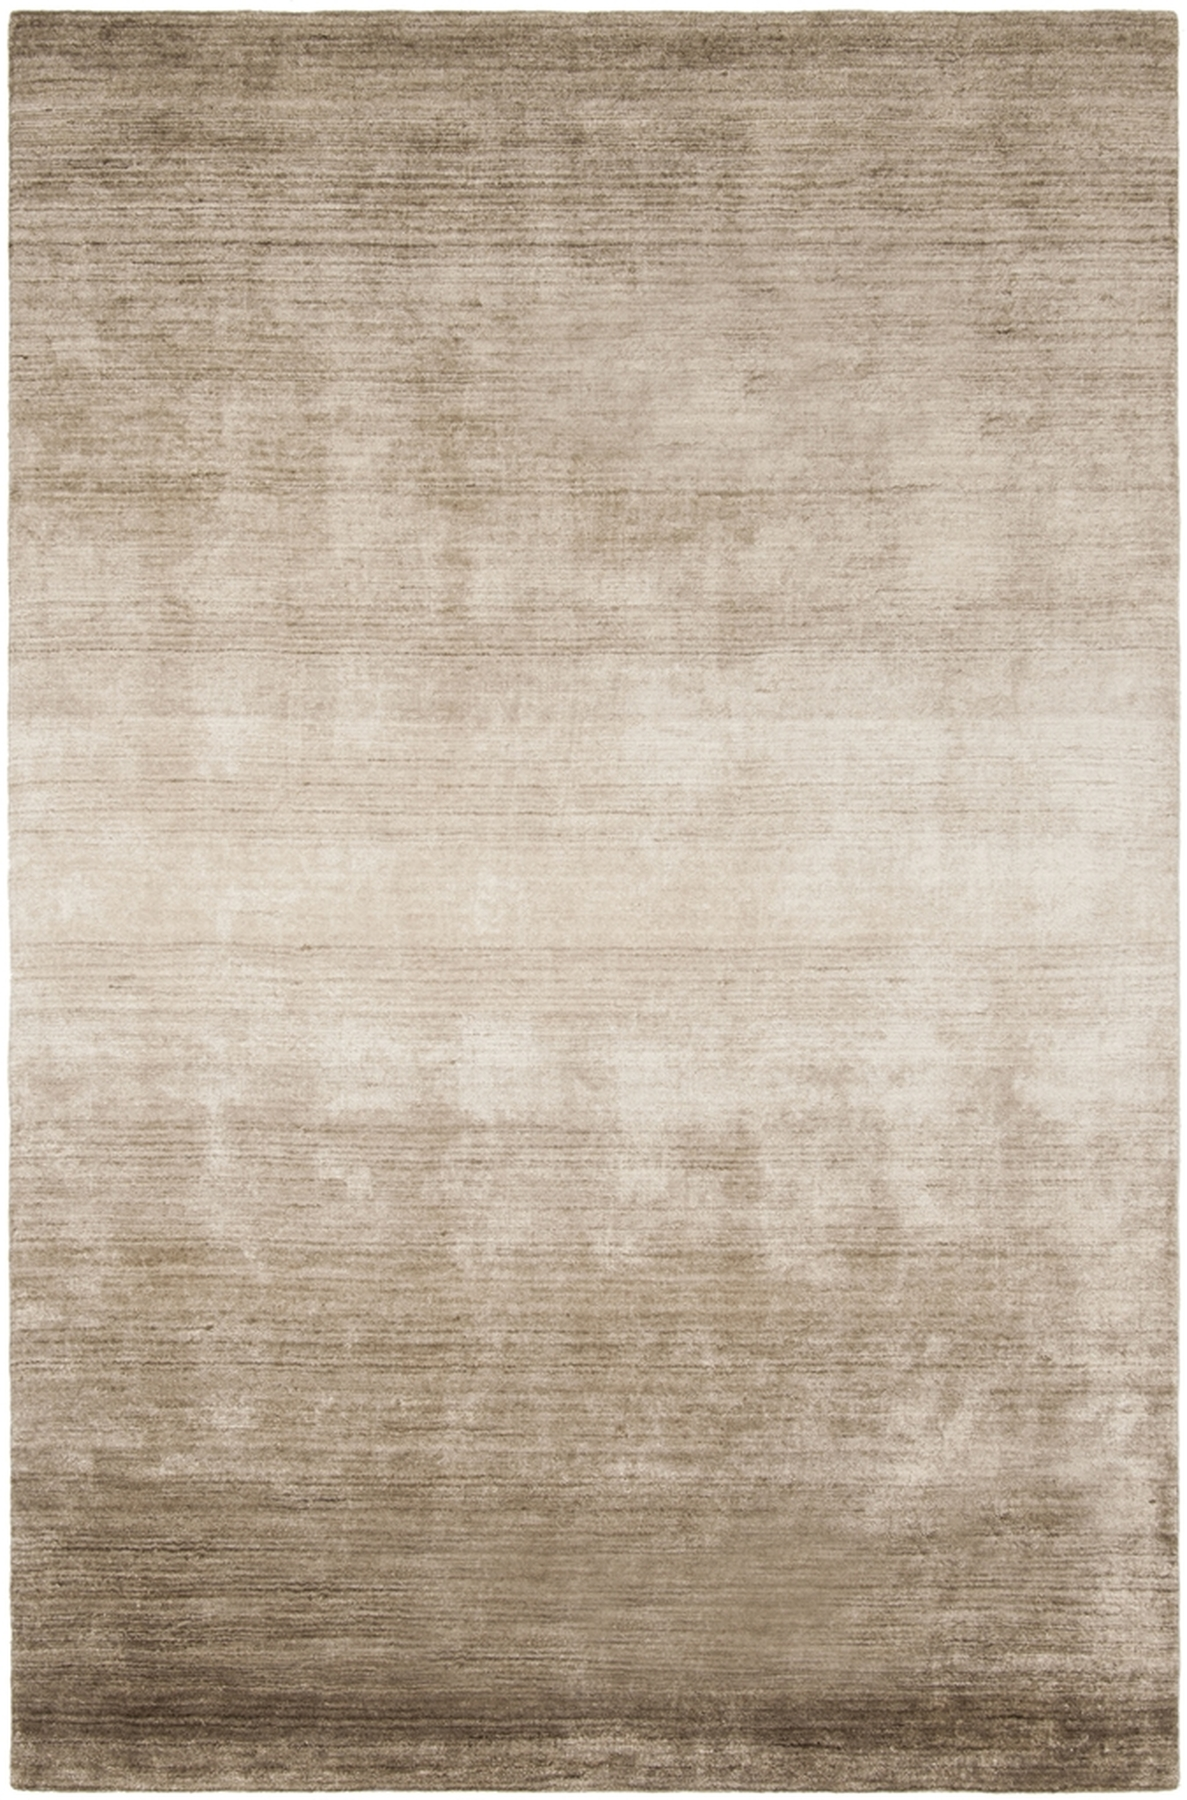 Rug Mir531a Mirage Area Rugs By Safavieh